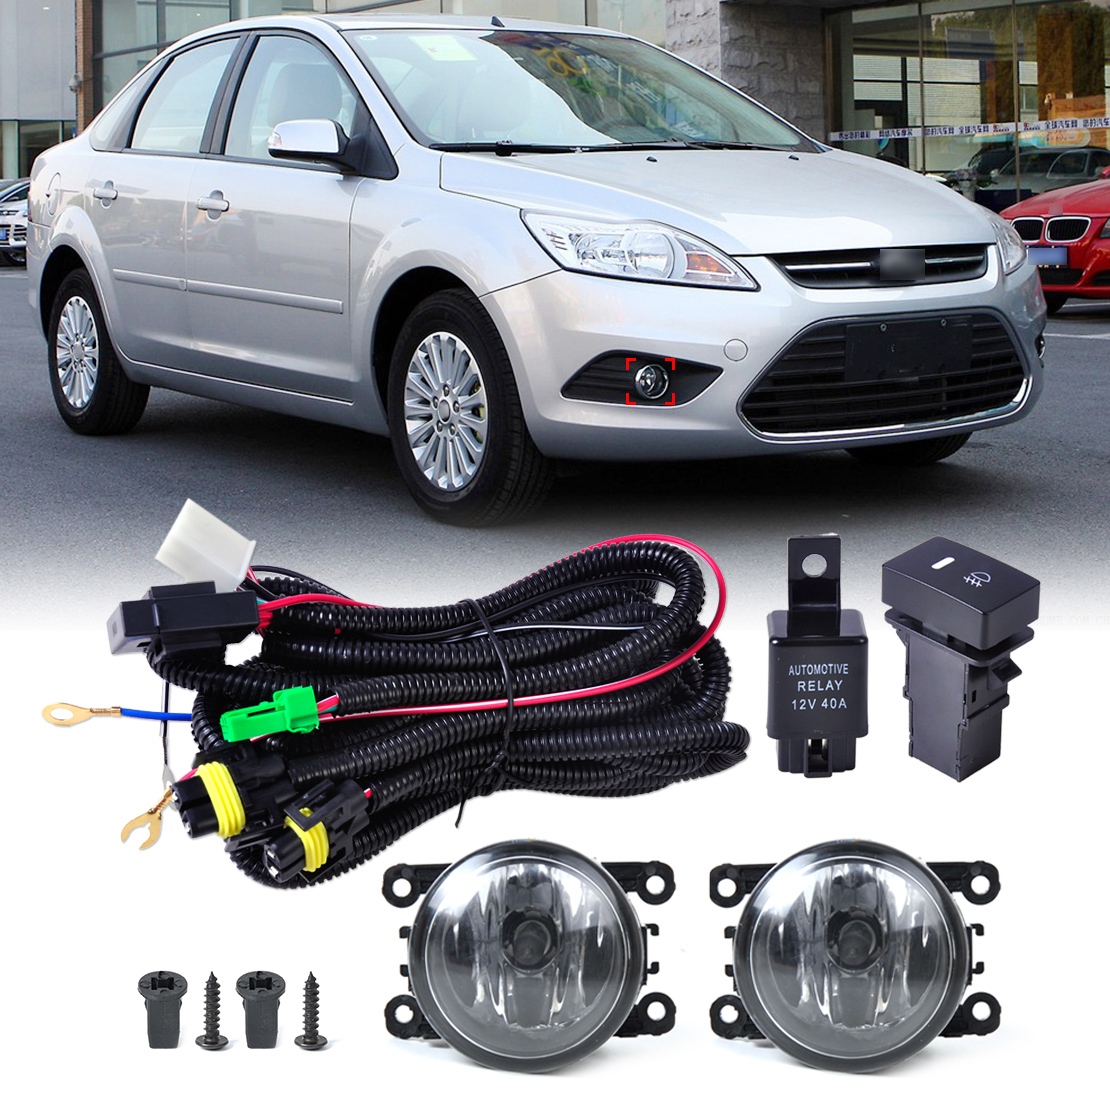 beler New Wiring Harness Sockets + Switch + 2 Fog Lights H11 Lamp 12V 55W 4F9Z-15200-AA Kit for Ford Mustang Lincoln Subaru set wiring harness sockets wire switch for h11 fog light lamp for ford focus 2008 2014 acura tsx rdx for nissan cube for suzuki